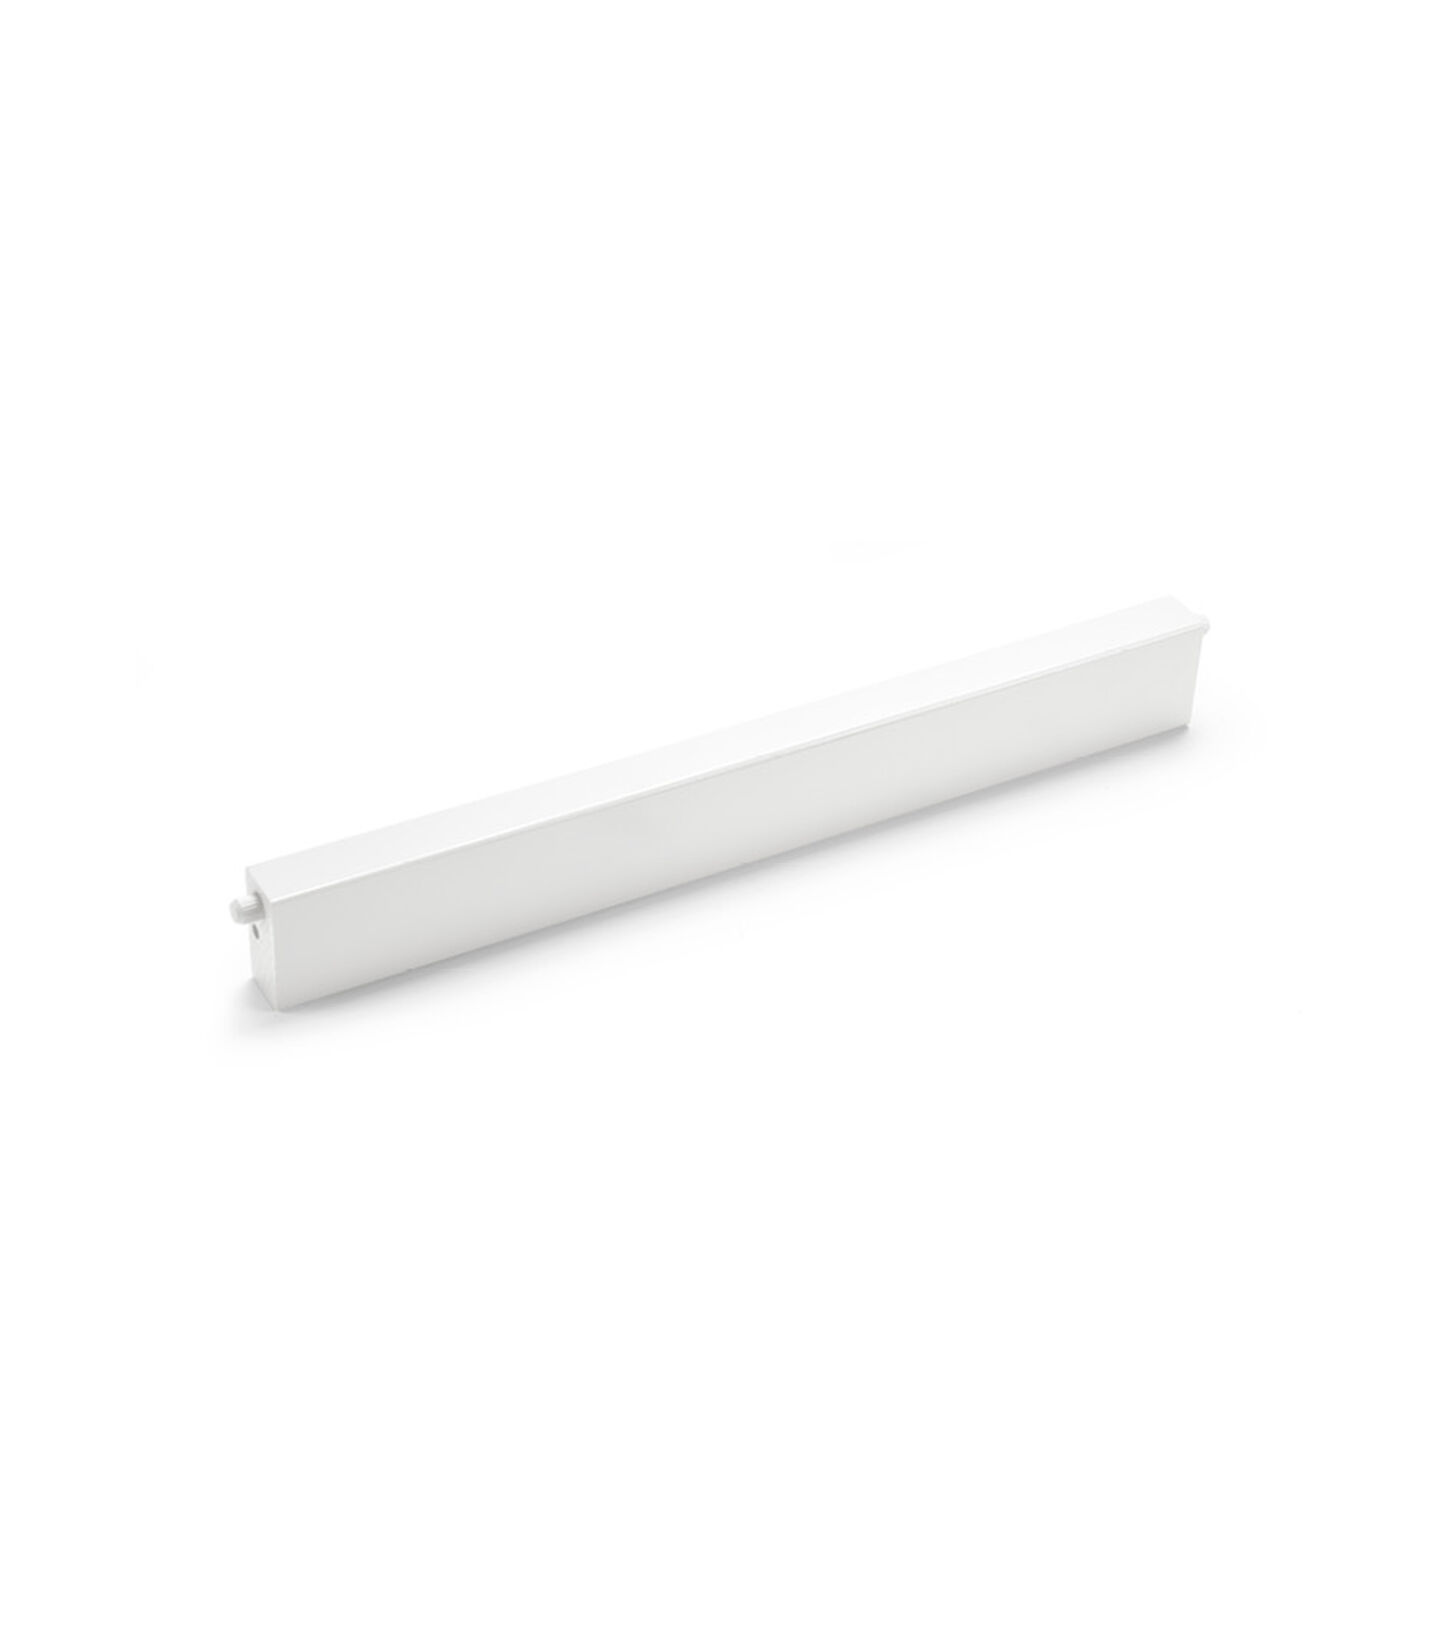 Tripp Trapp® Vloerbeugel White, White, mainview view 2